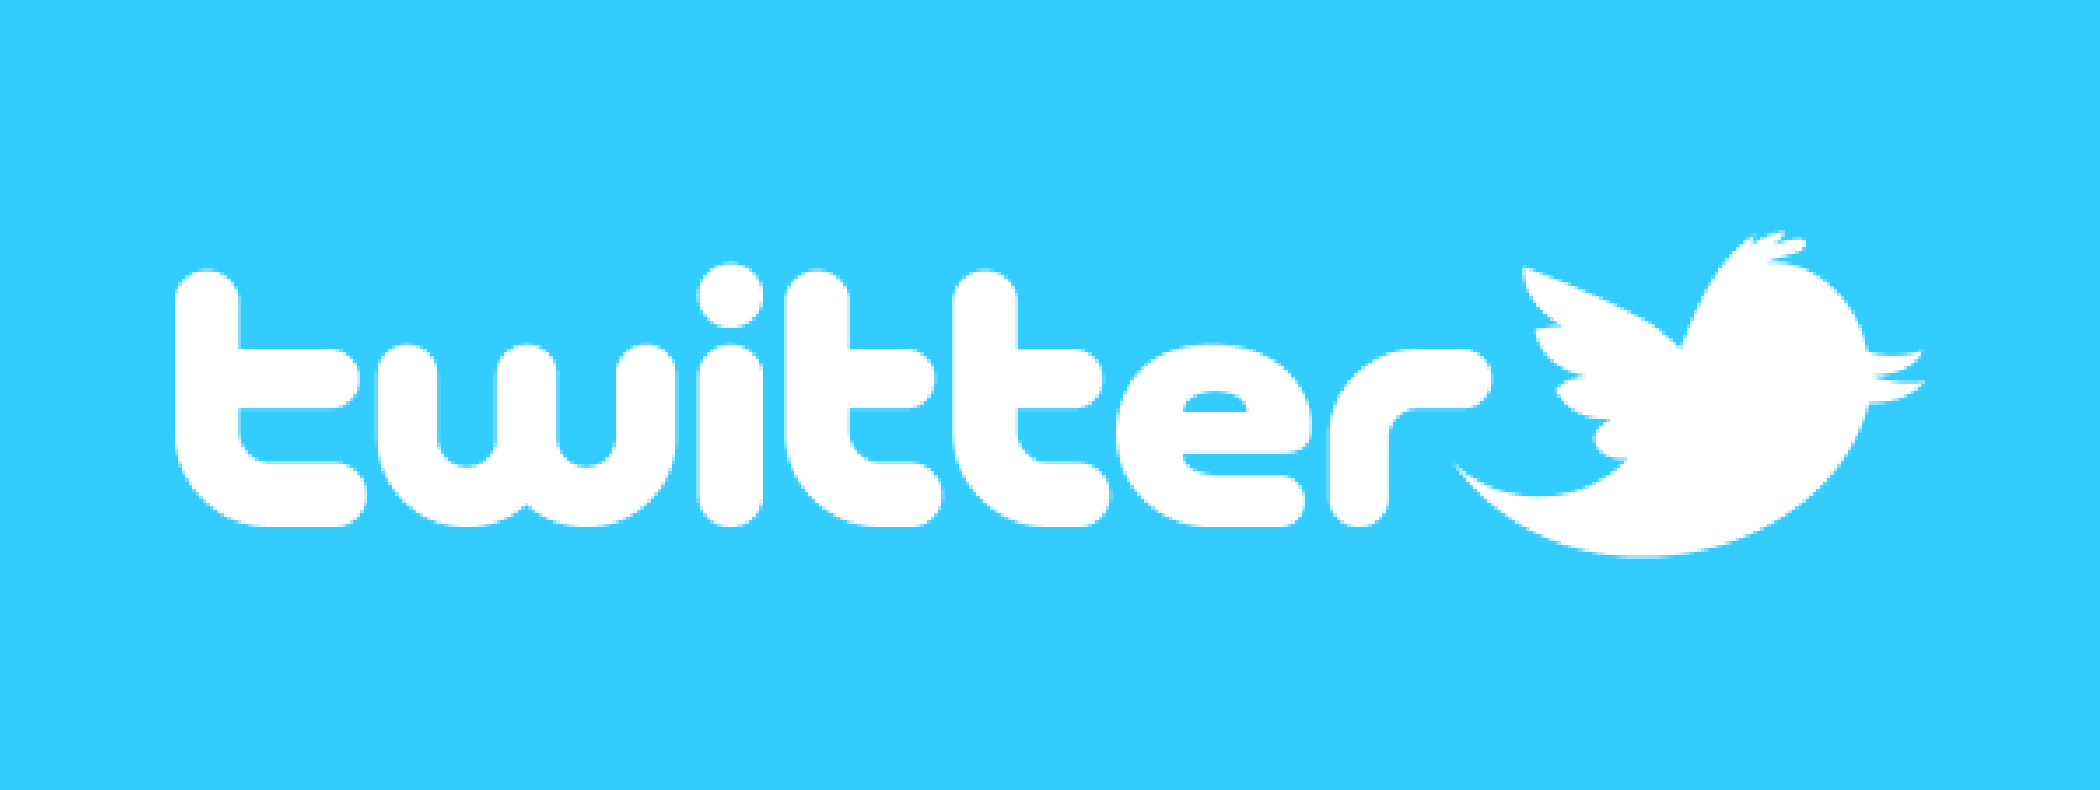 13 Twitter Logo Vector Png Free Cliparts That You Can Download To You